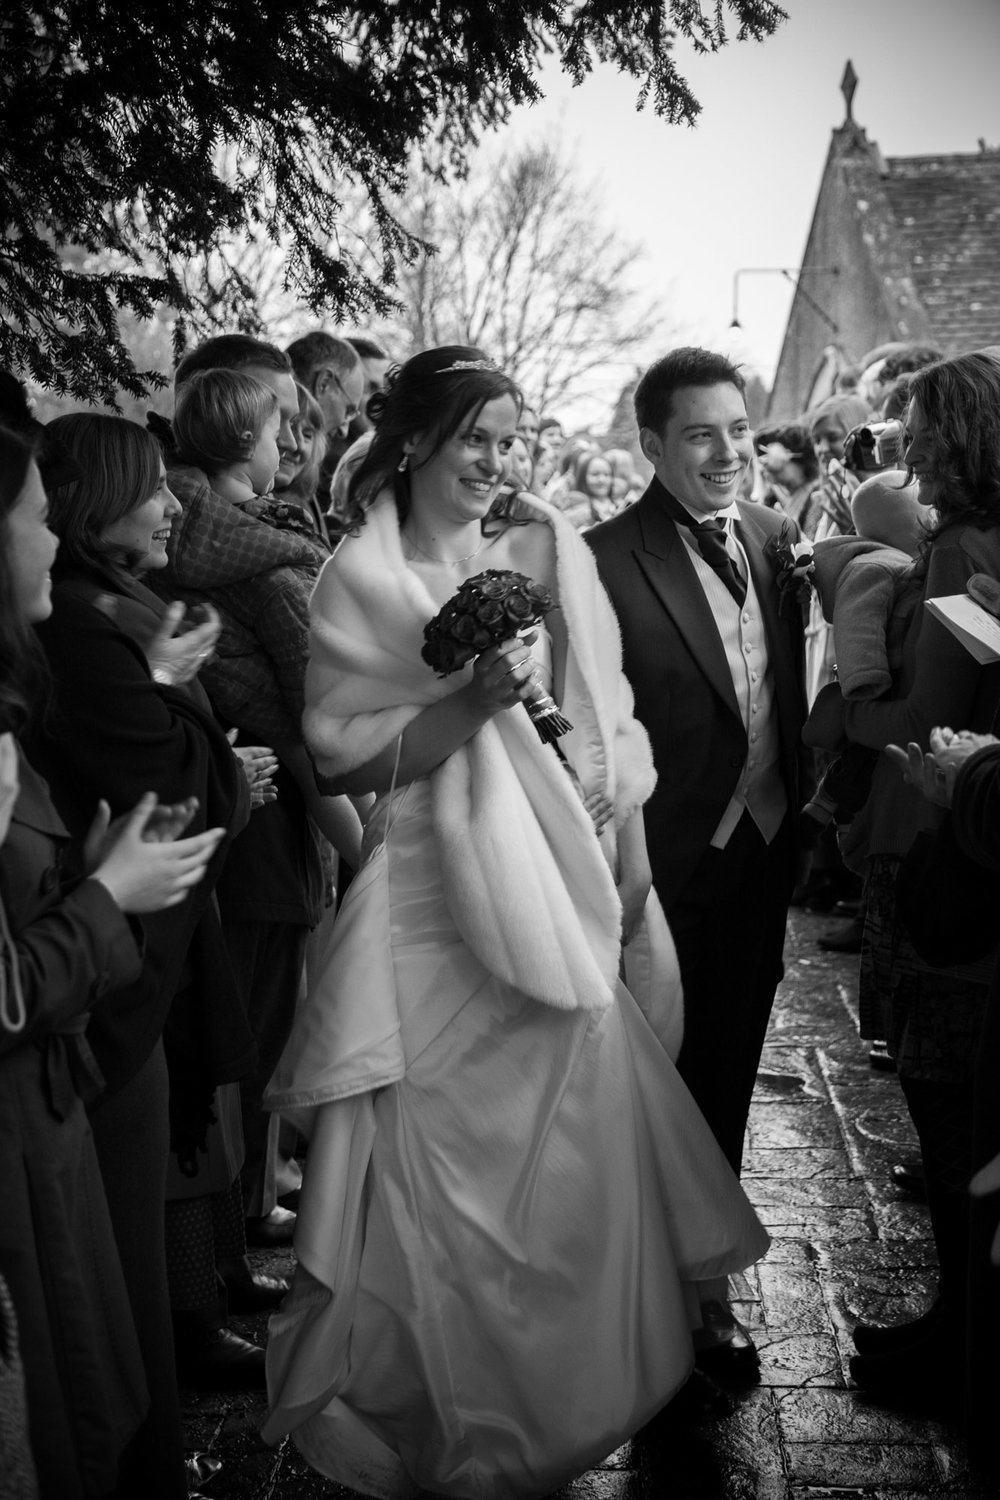 weddings-couples-love-photographer-oxford-london-jonathan-self-photography-51.jpg